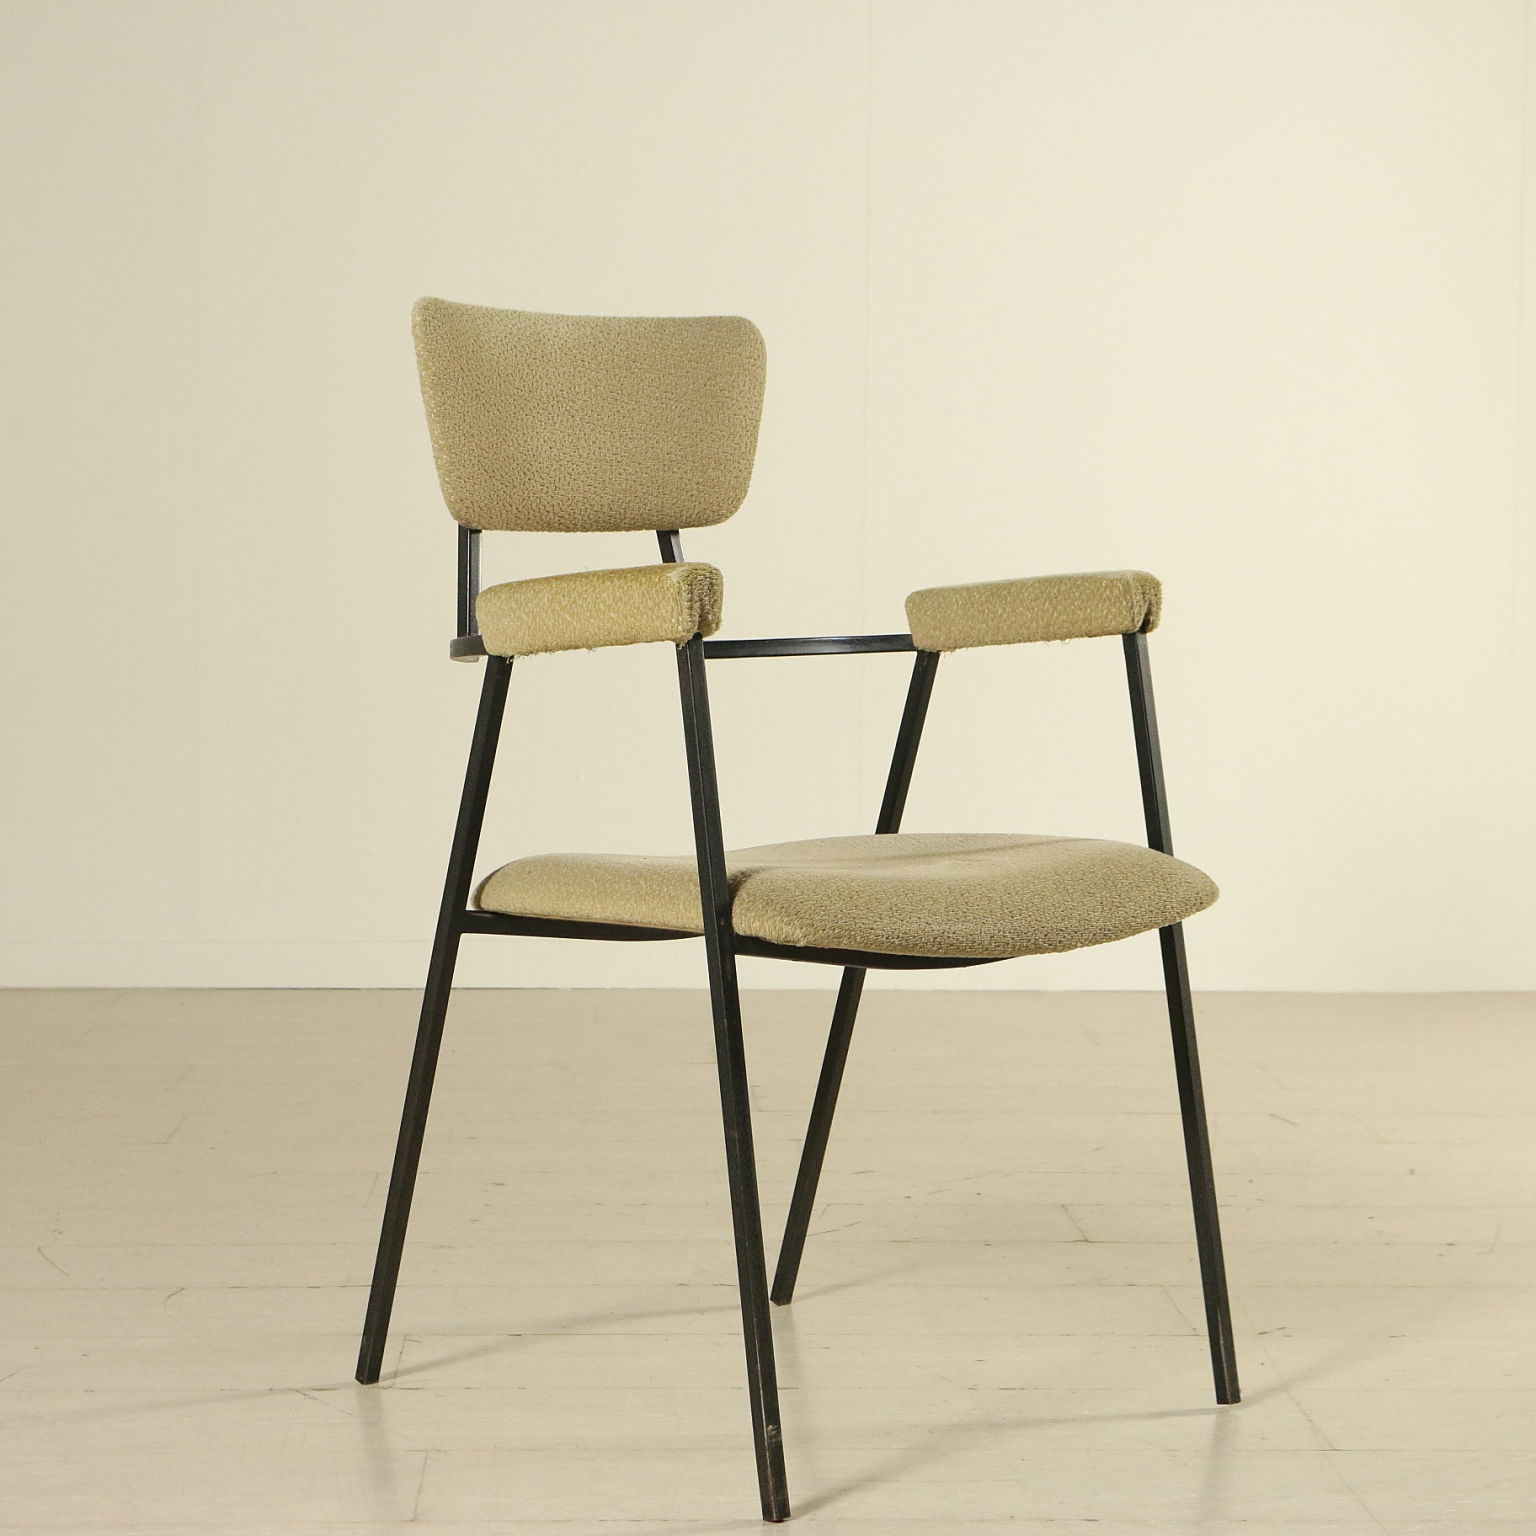 1960s chair chairs modern design for Sedia design anni 60